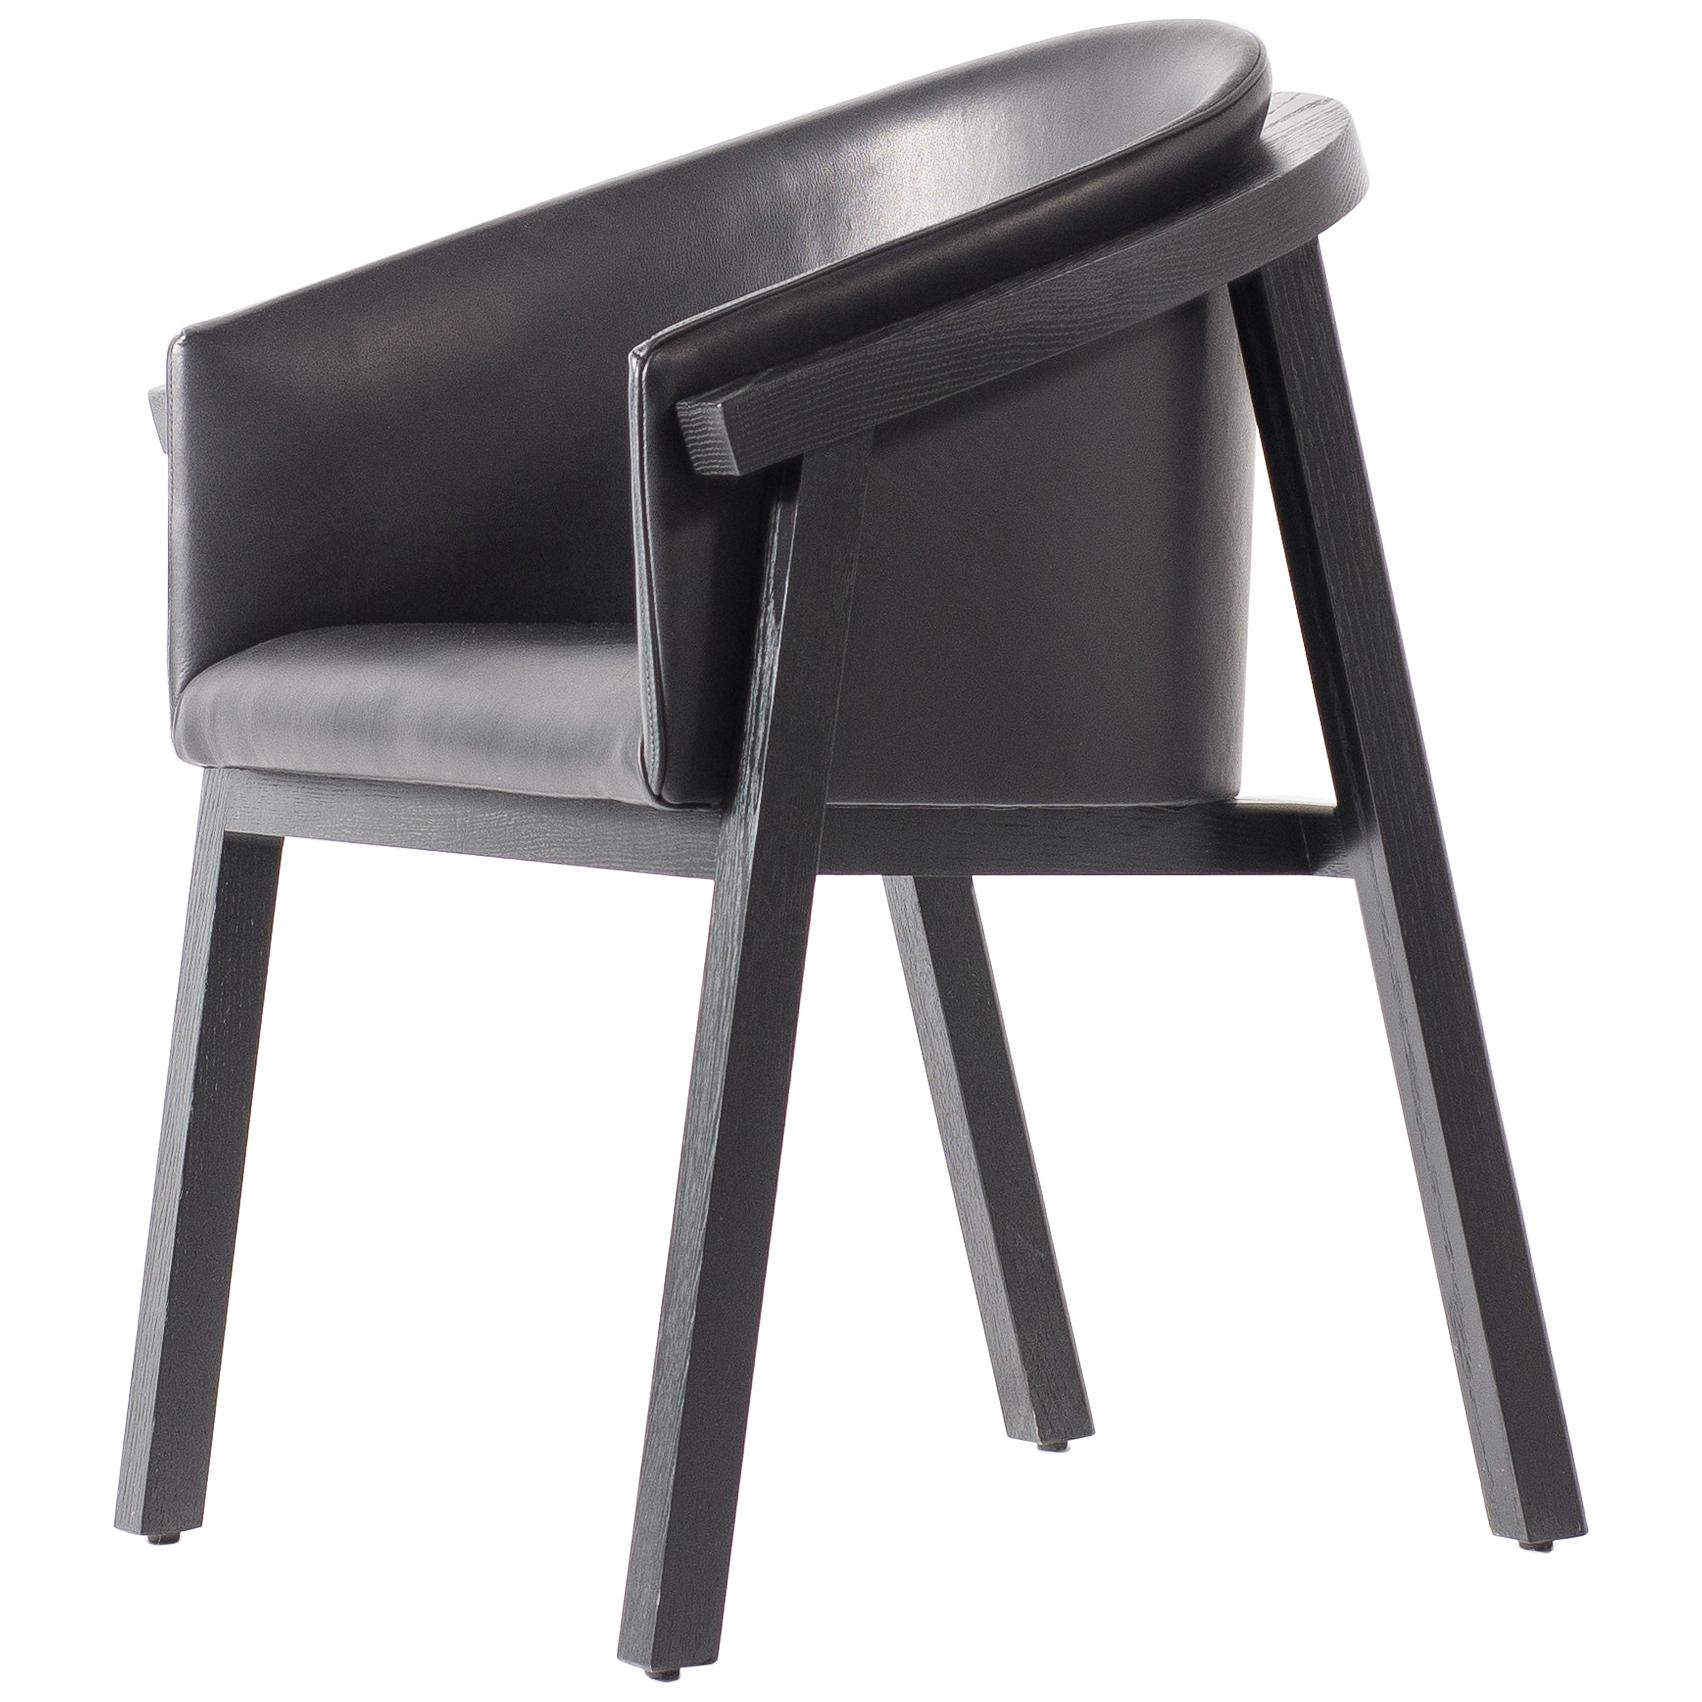 Oxidized Oak Bucket Dining Chair with Upholstered Leather Seat/Dining Chair GH3